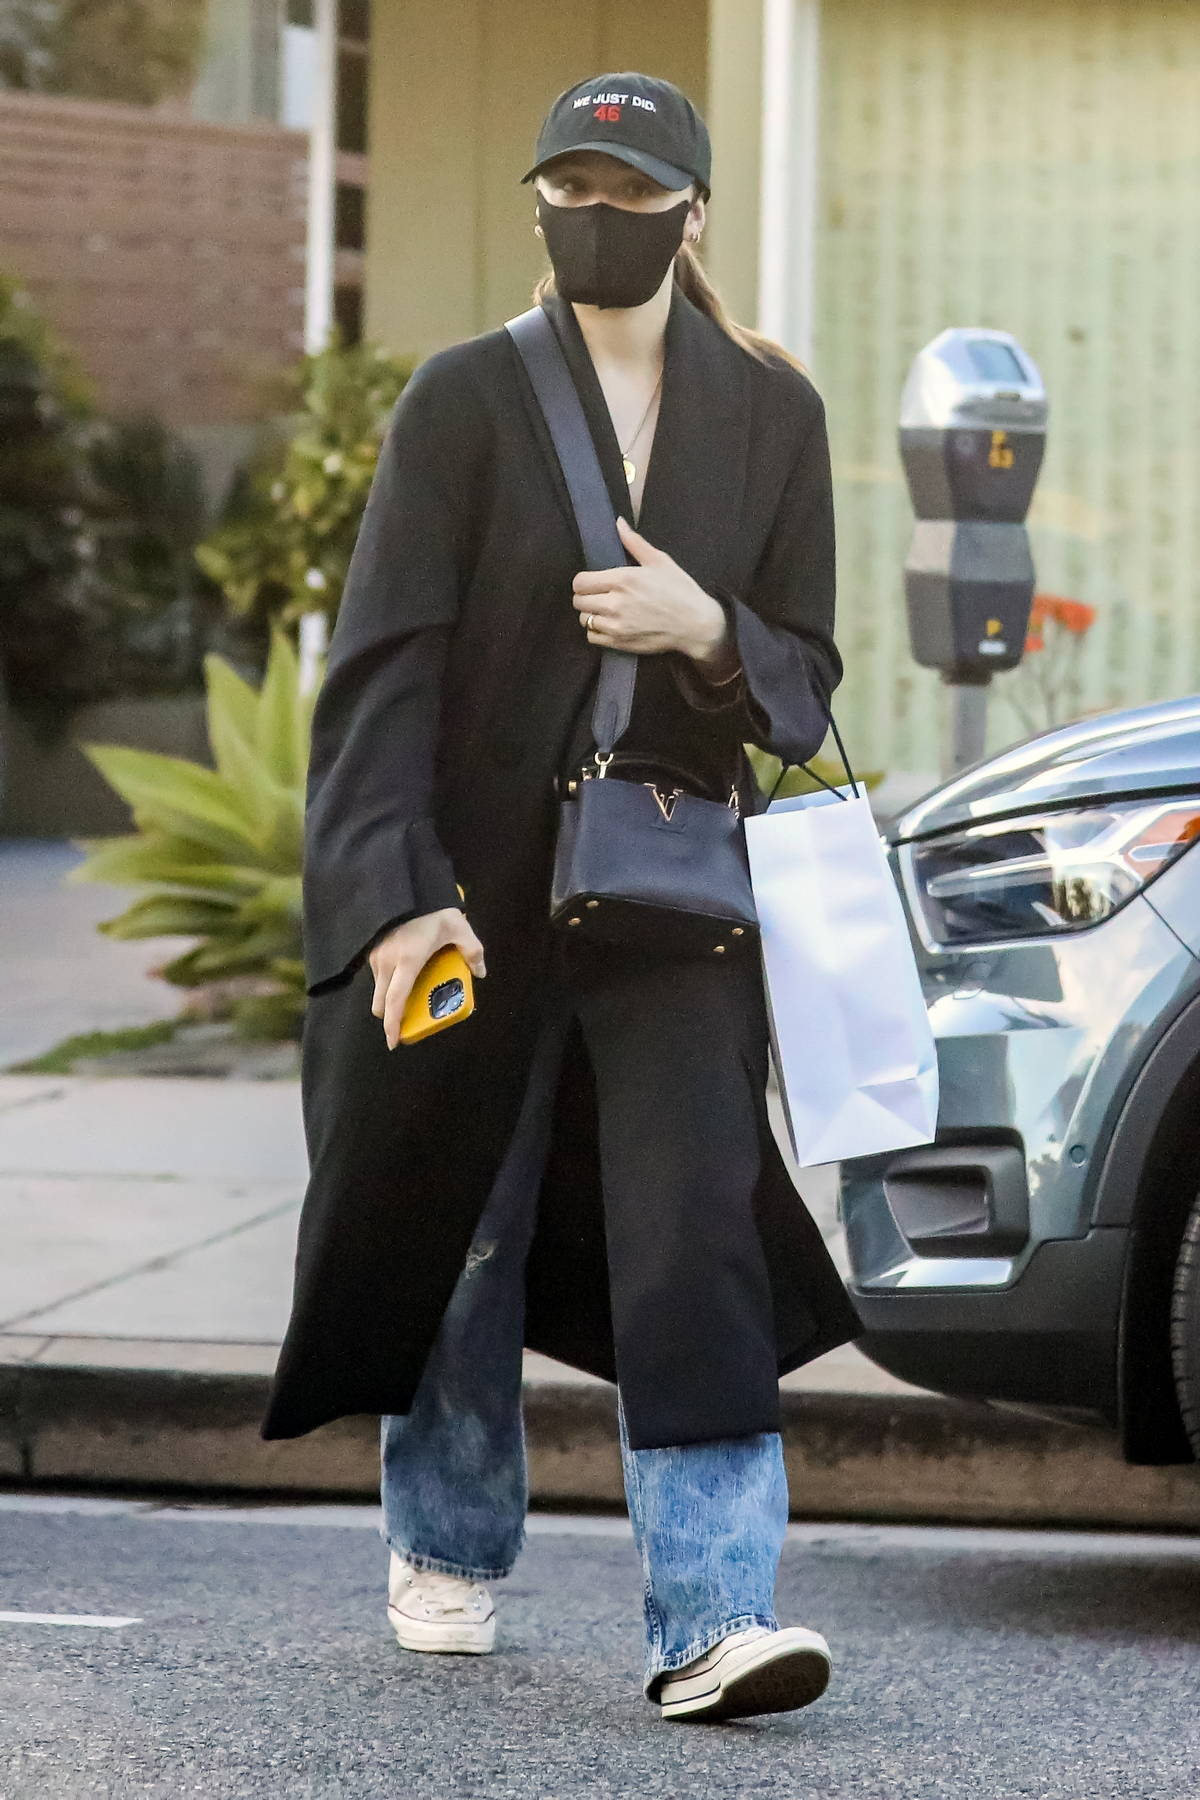 Chloe Grace Moretz goes incognito while out shopping in Pacific Palisades, California